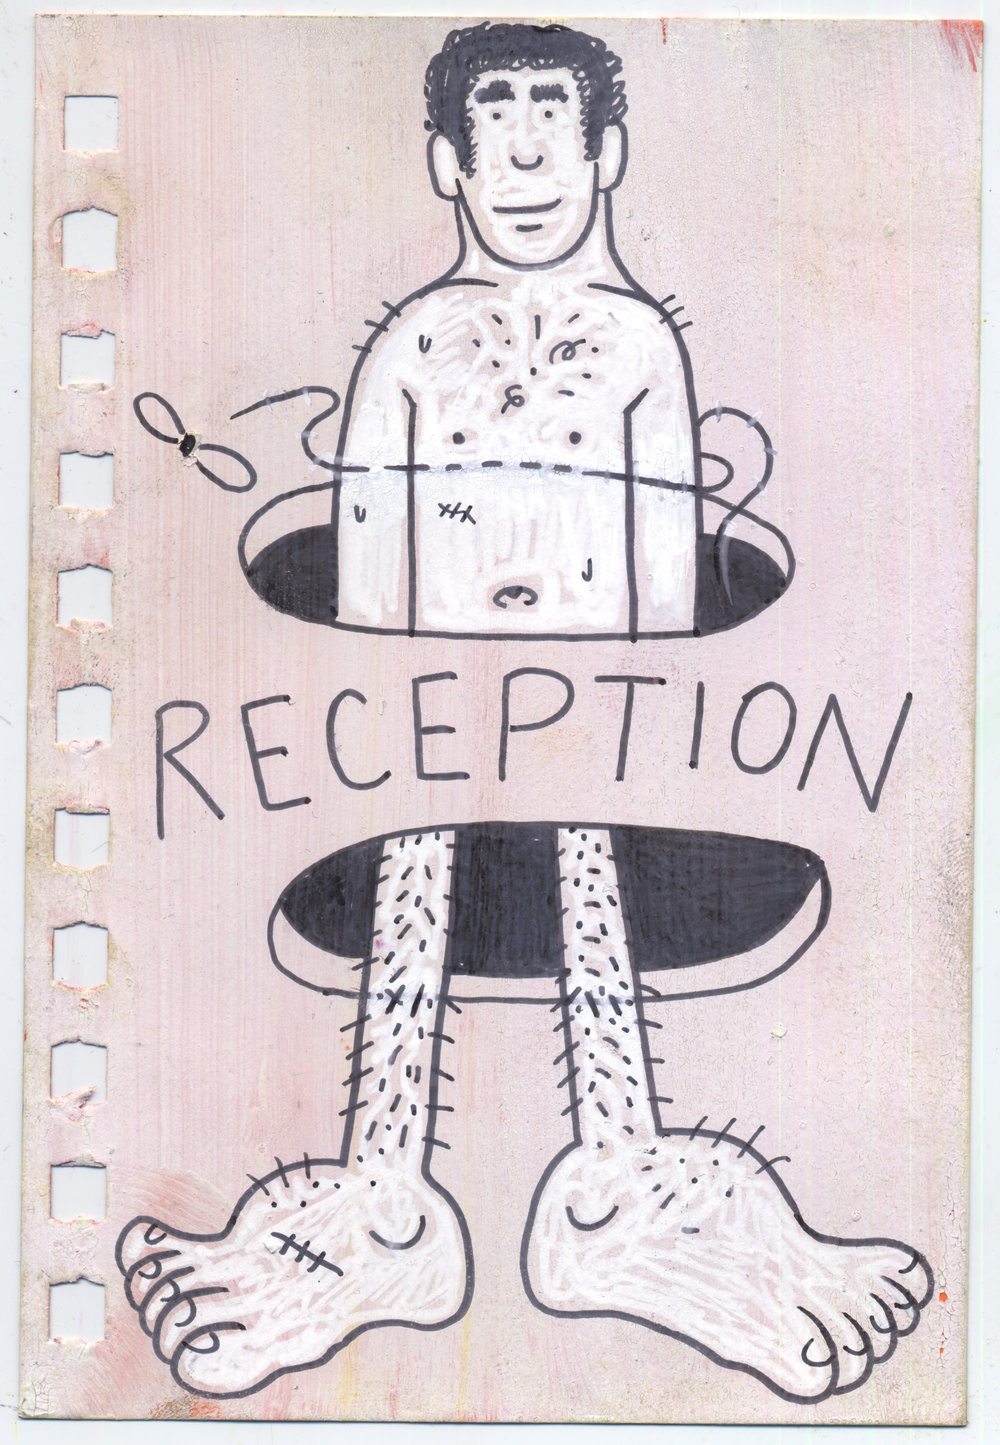 Reception (Hole)